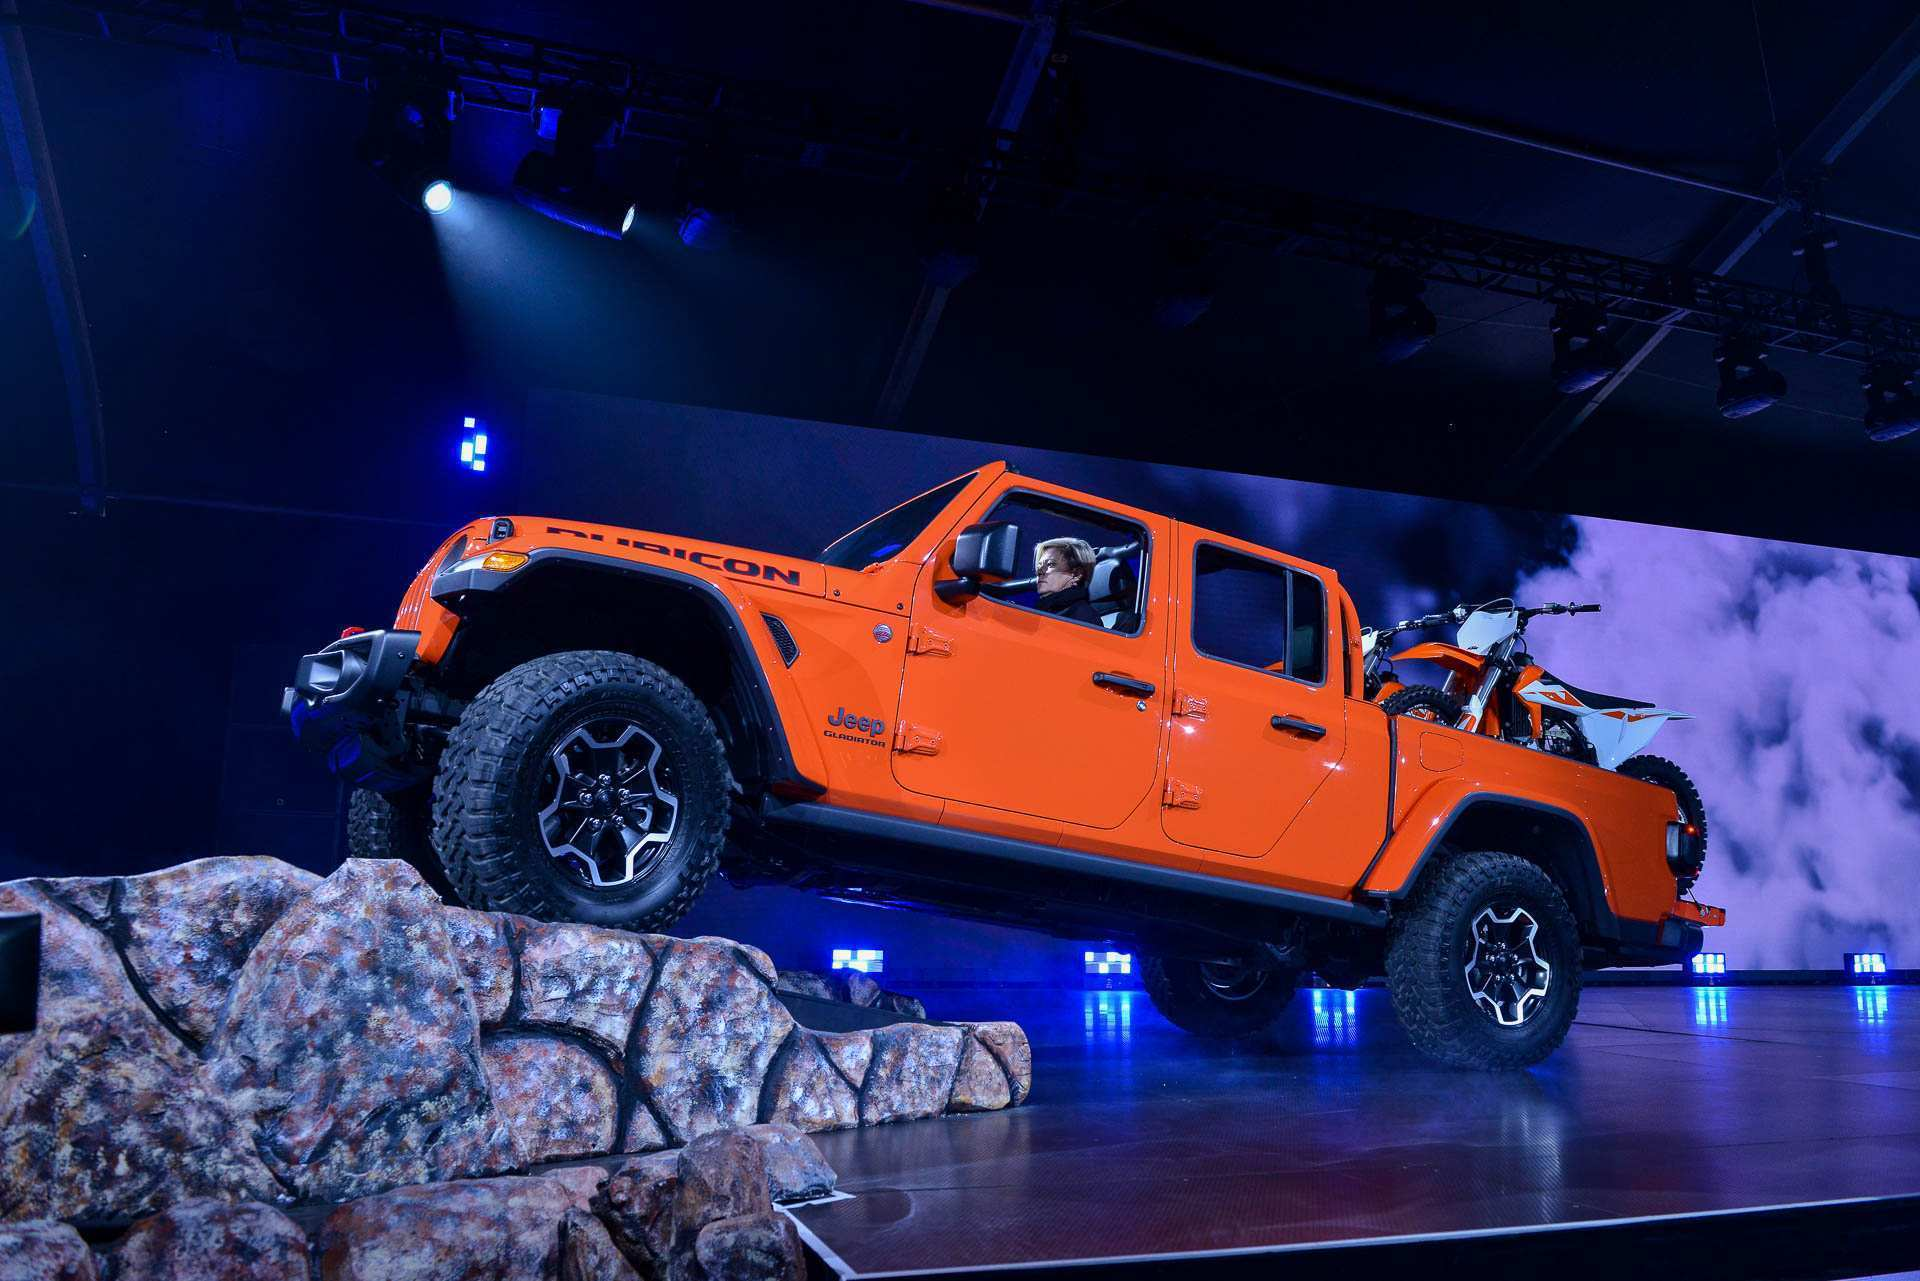 17 New 2020 Jeep Wrangler Pickup Truck New Concept for 2020 Jeep Wrangler Pickup Truck